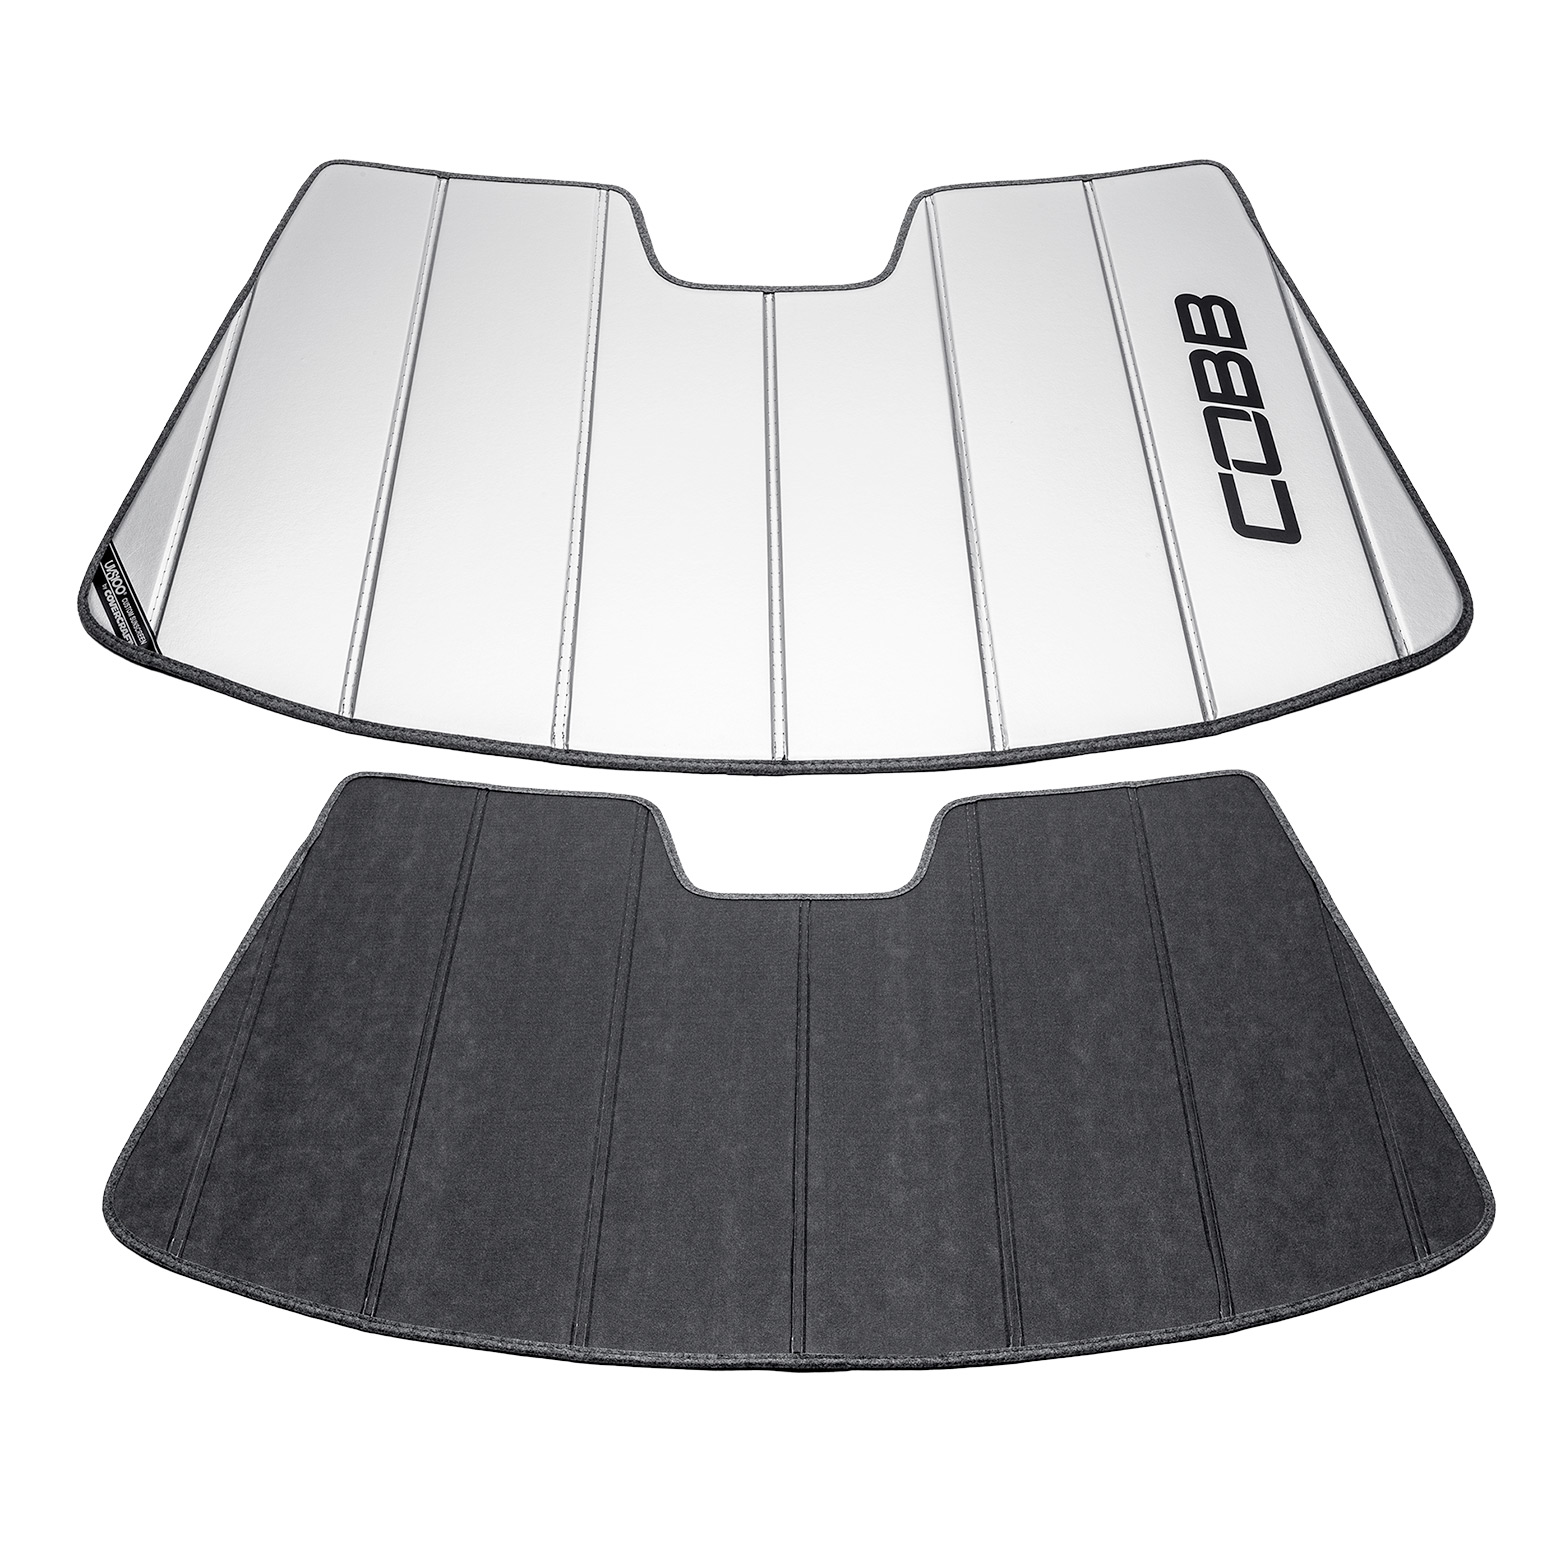 COBB x Covercraft Sun Shade Mazdaspeed3 2008-2009